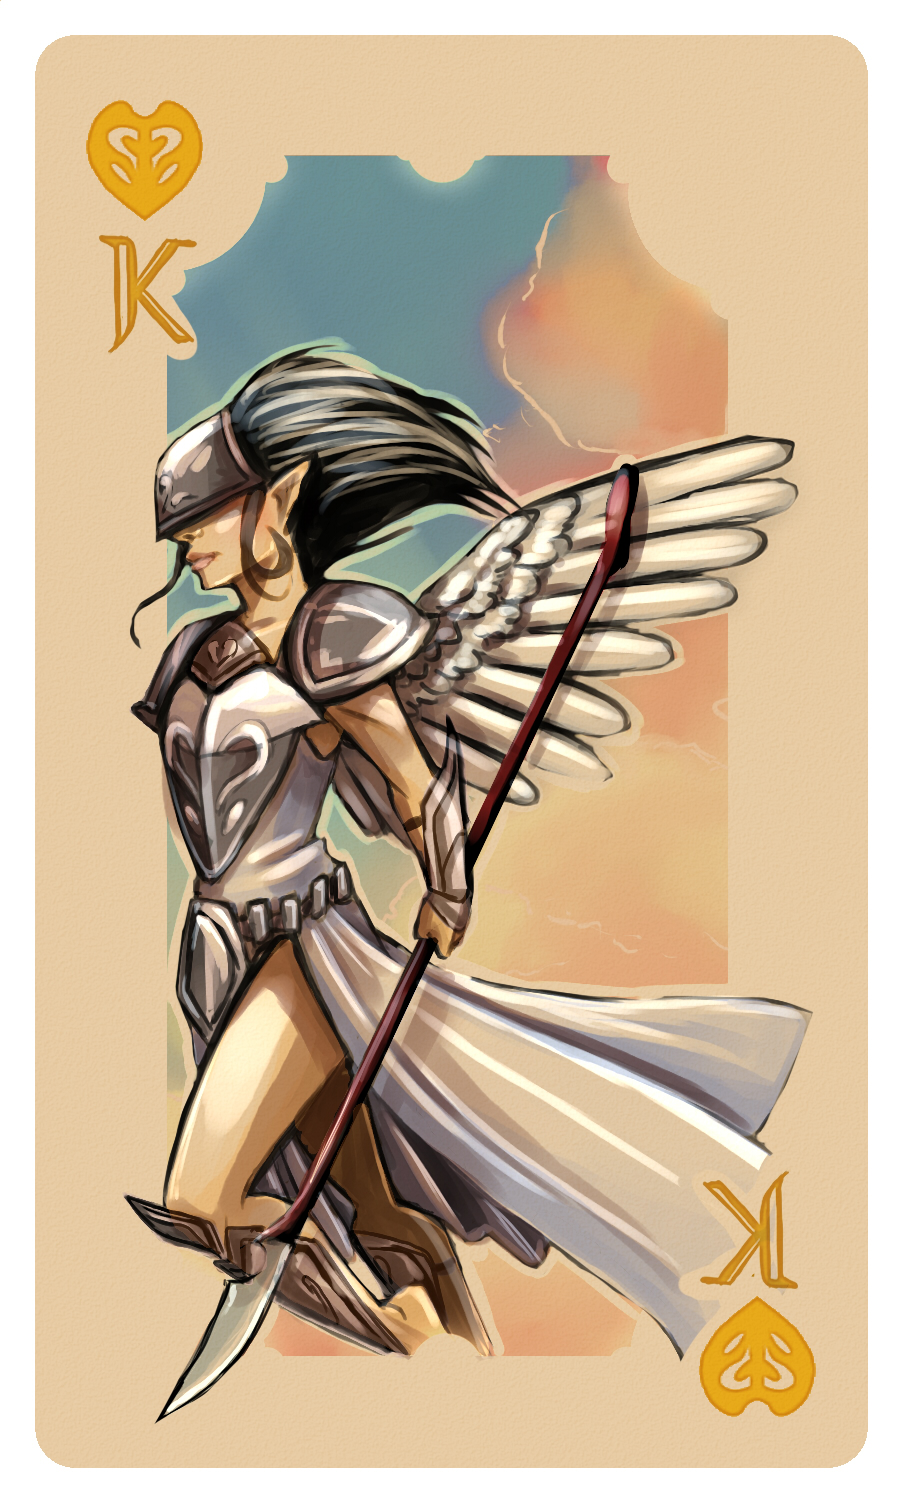 archangel_by_thedandmom-d6gpbfh.jpg